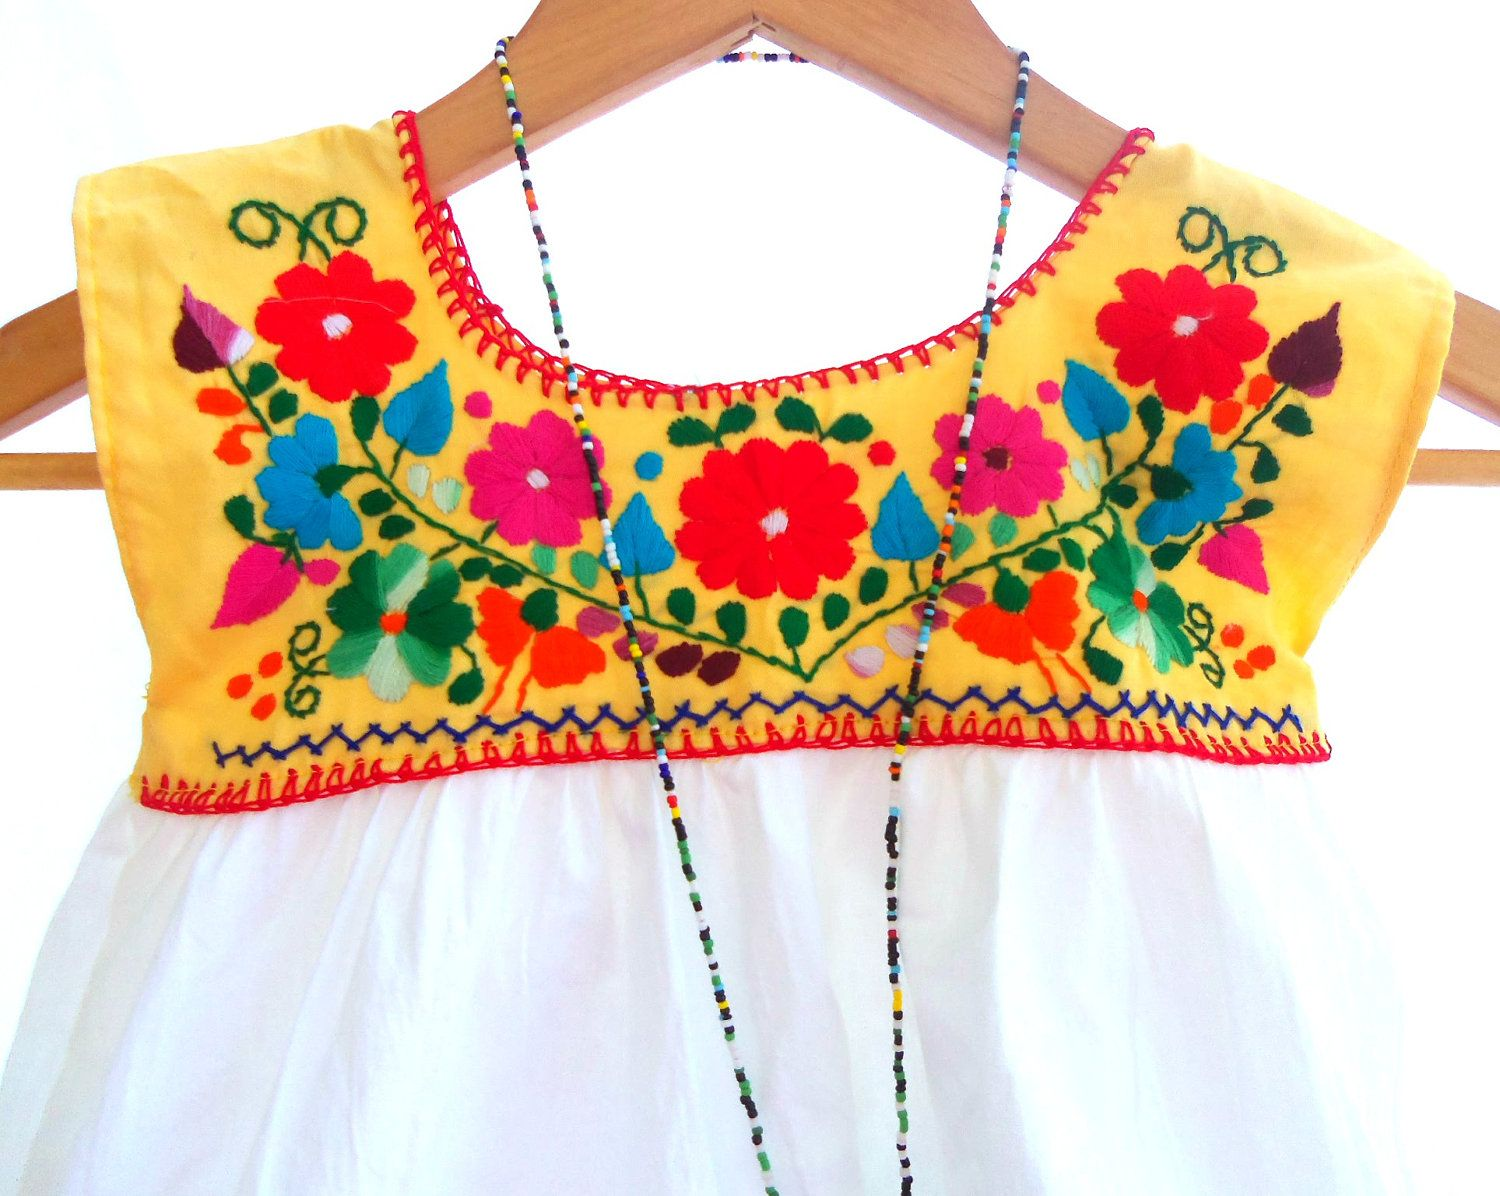 Mexican Hand Embroidery Patterns | Request a custom order and have something  made just for you